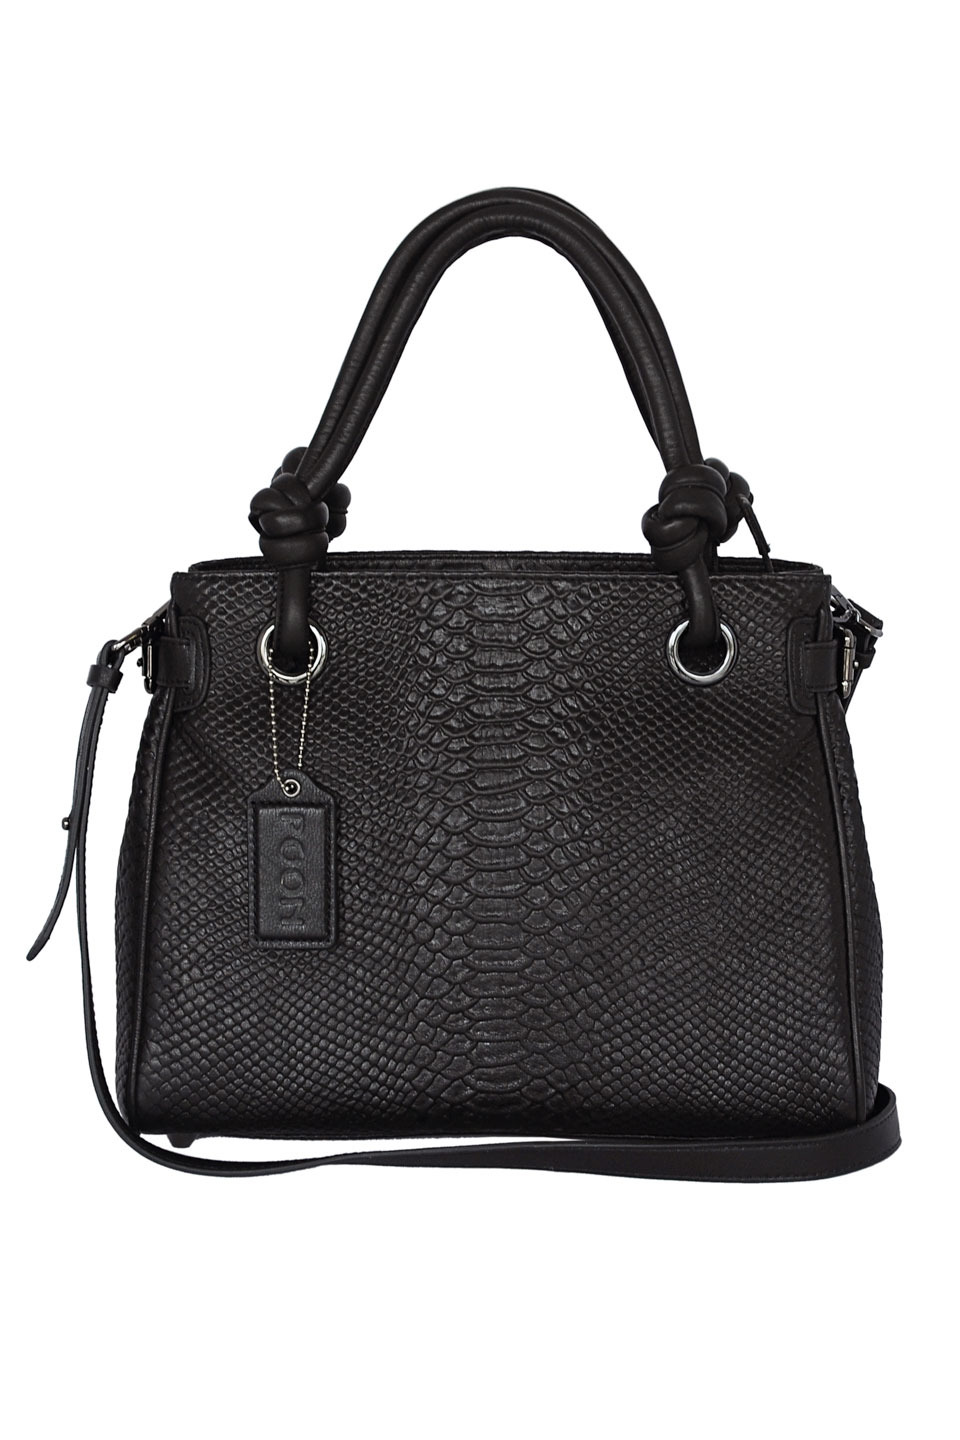 BERYL LEATHER SHOULDER BAG IN BLACK